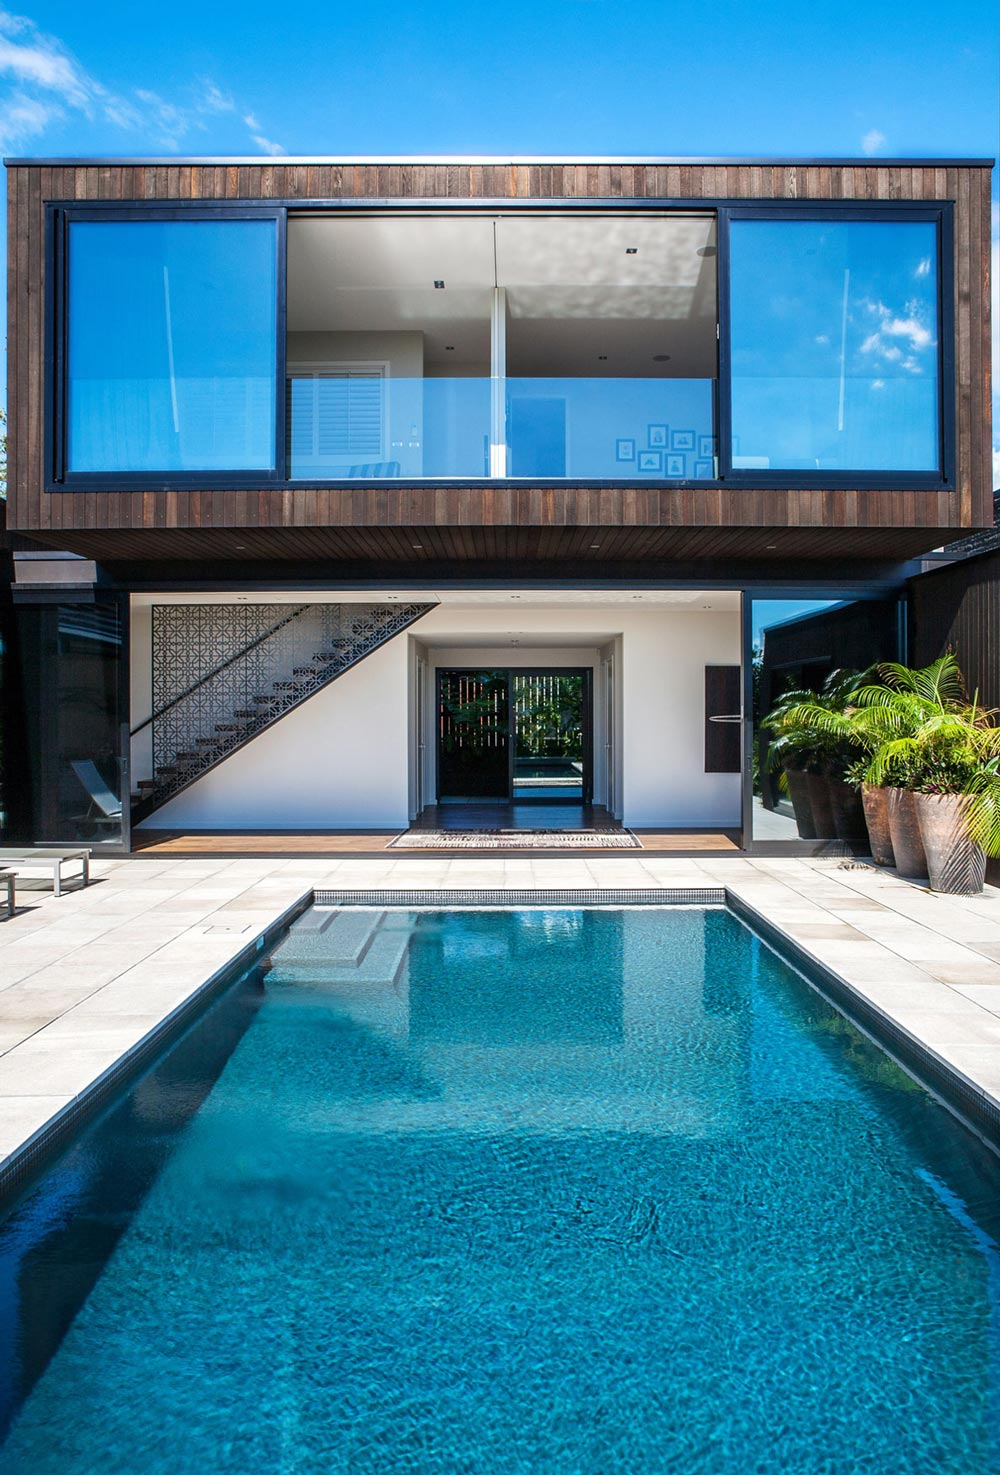 Swimming pool terrace large windows modern house in - Piscinas minimalistas ...